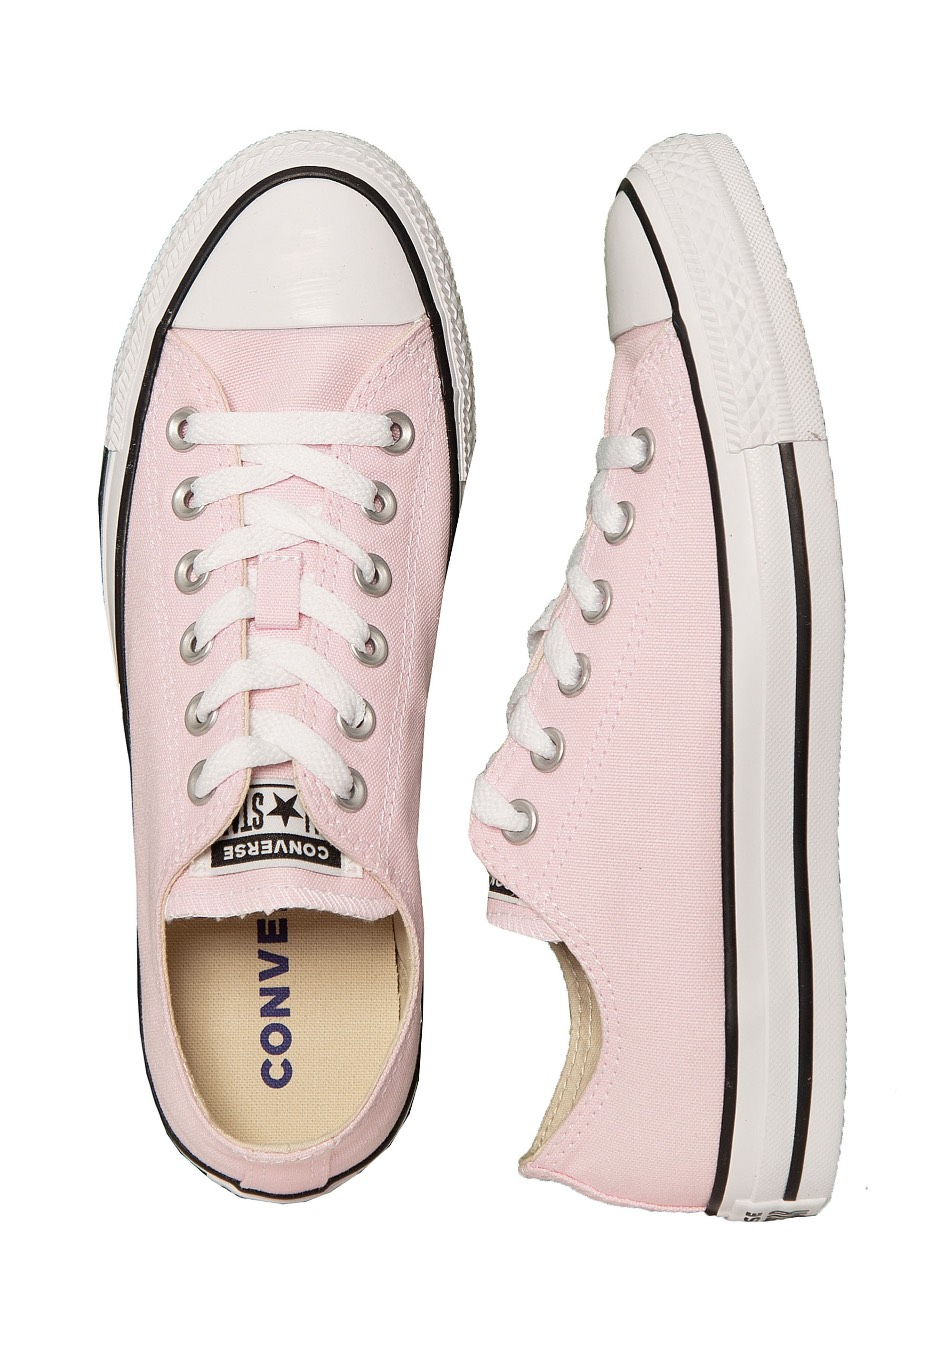 aabf6a6a866d Converse - Chuck Taylor All Star Ox Pink Foam - Girl Shoes - Impericon.com  AU